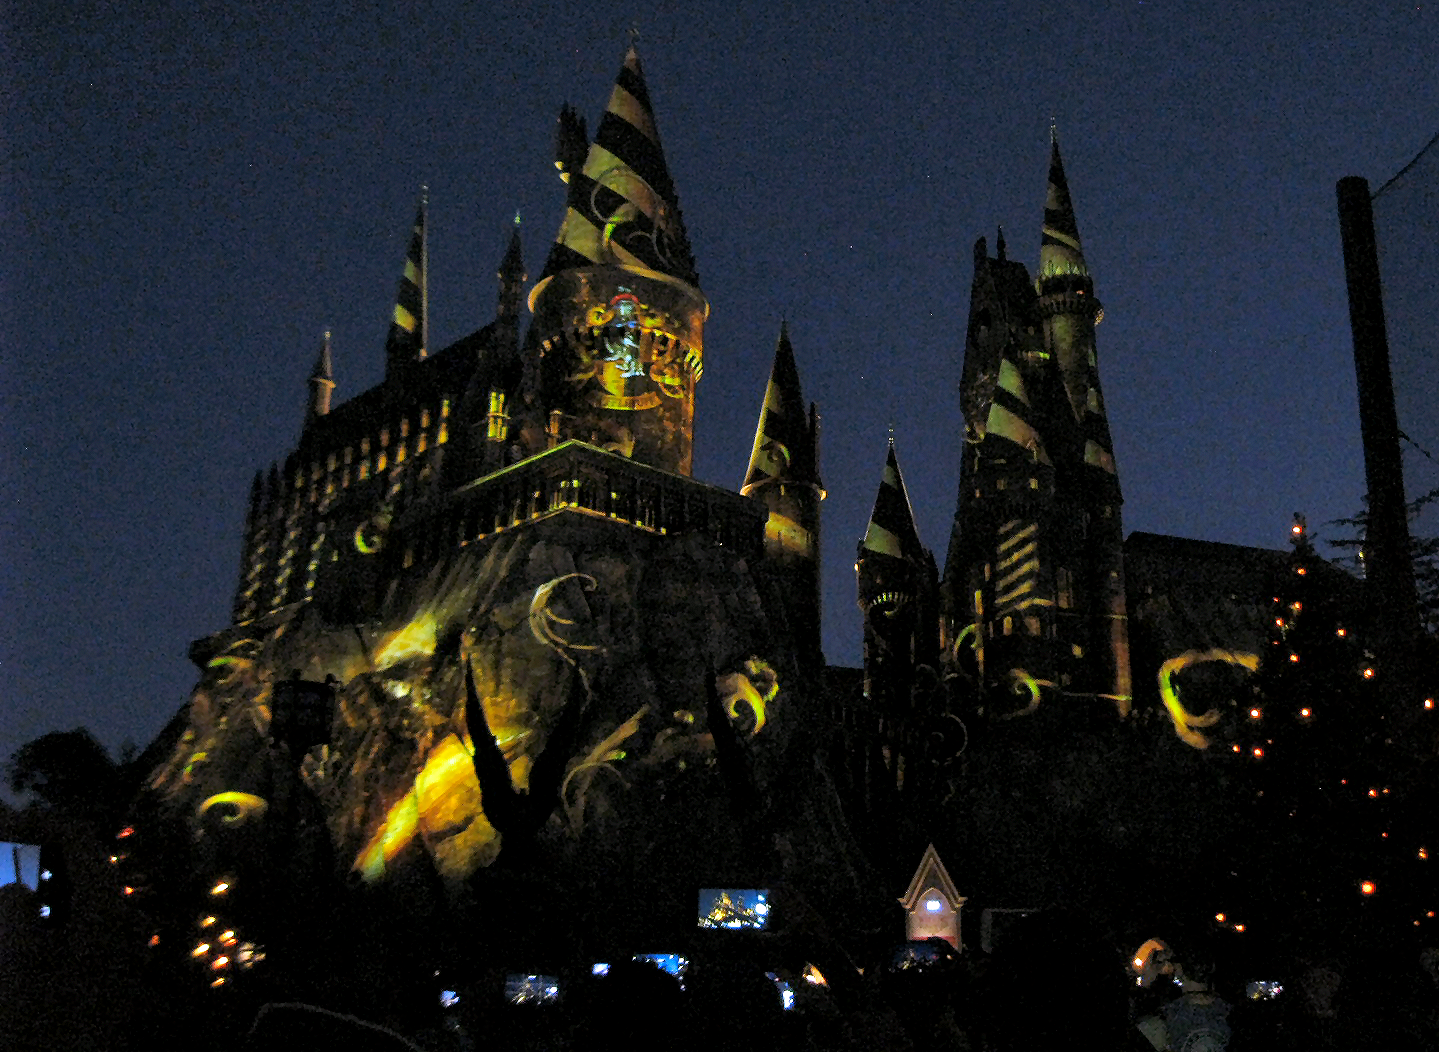 Nighttime Lights at Hogwarts Castle Hufflepuff